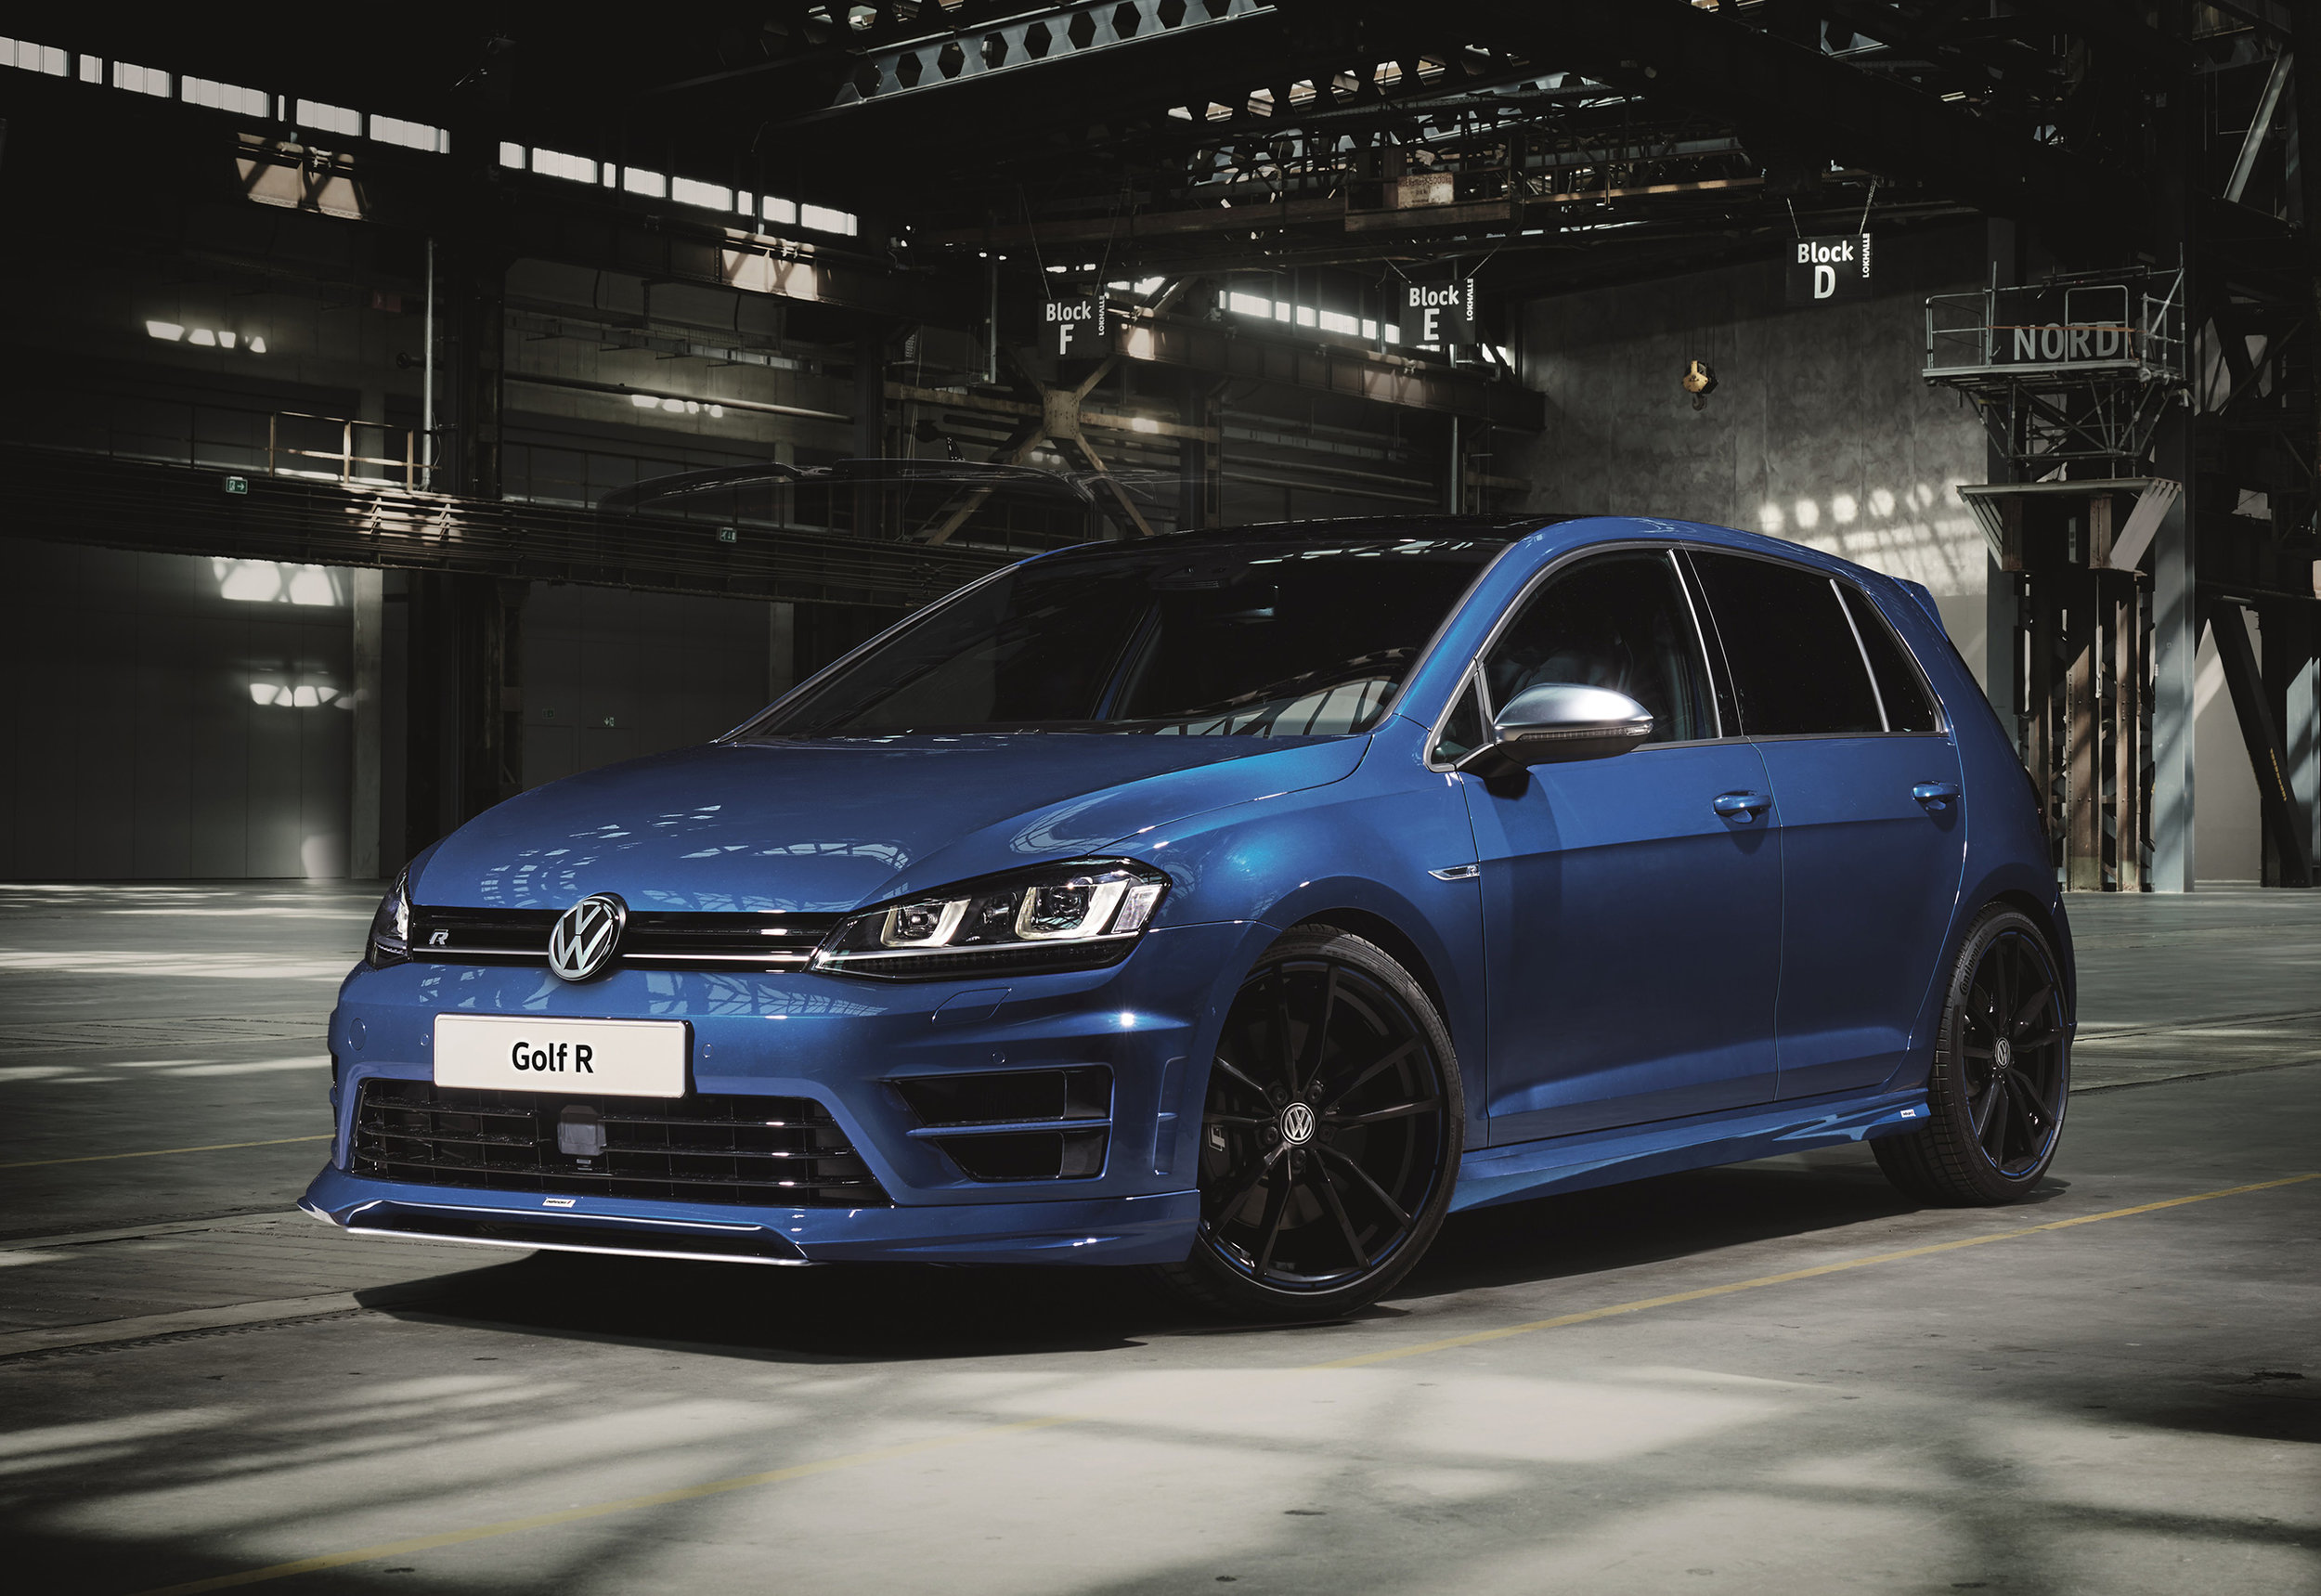 Volkswagen-Performance-Golfs-and-Oettinger-R-front.jpg